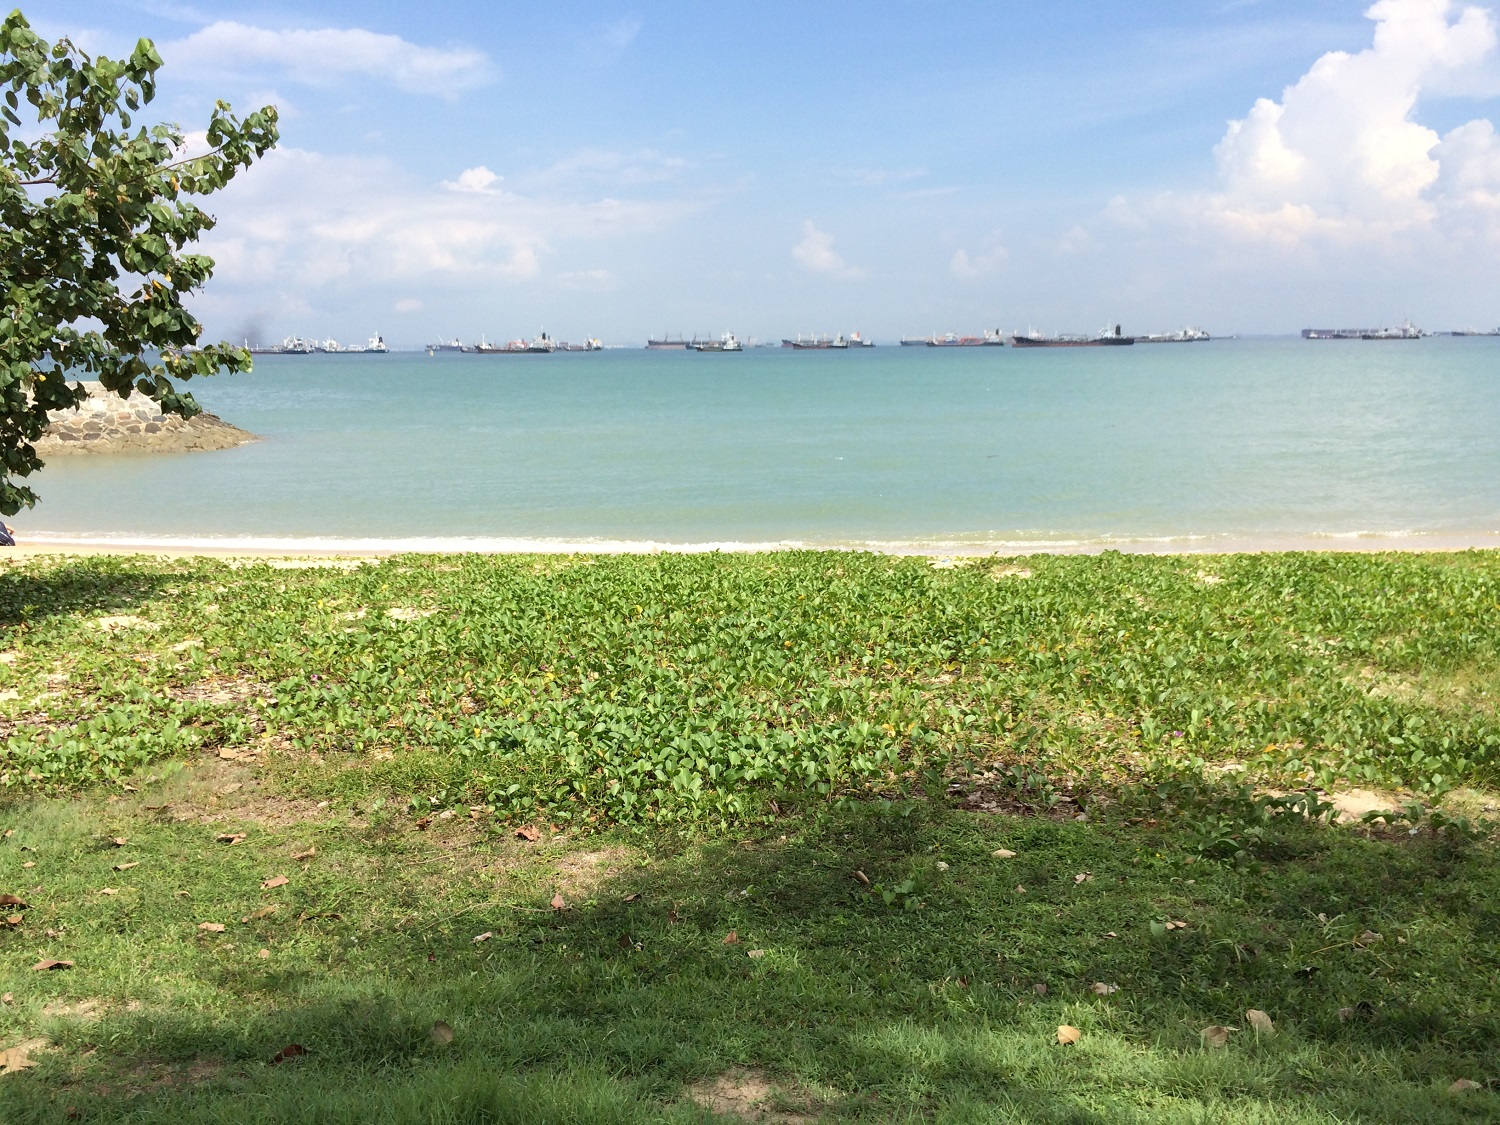 beach near the airport in Singapore